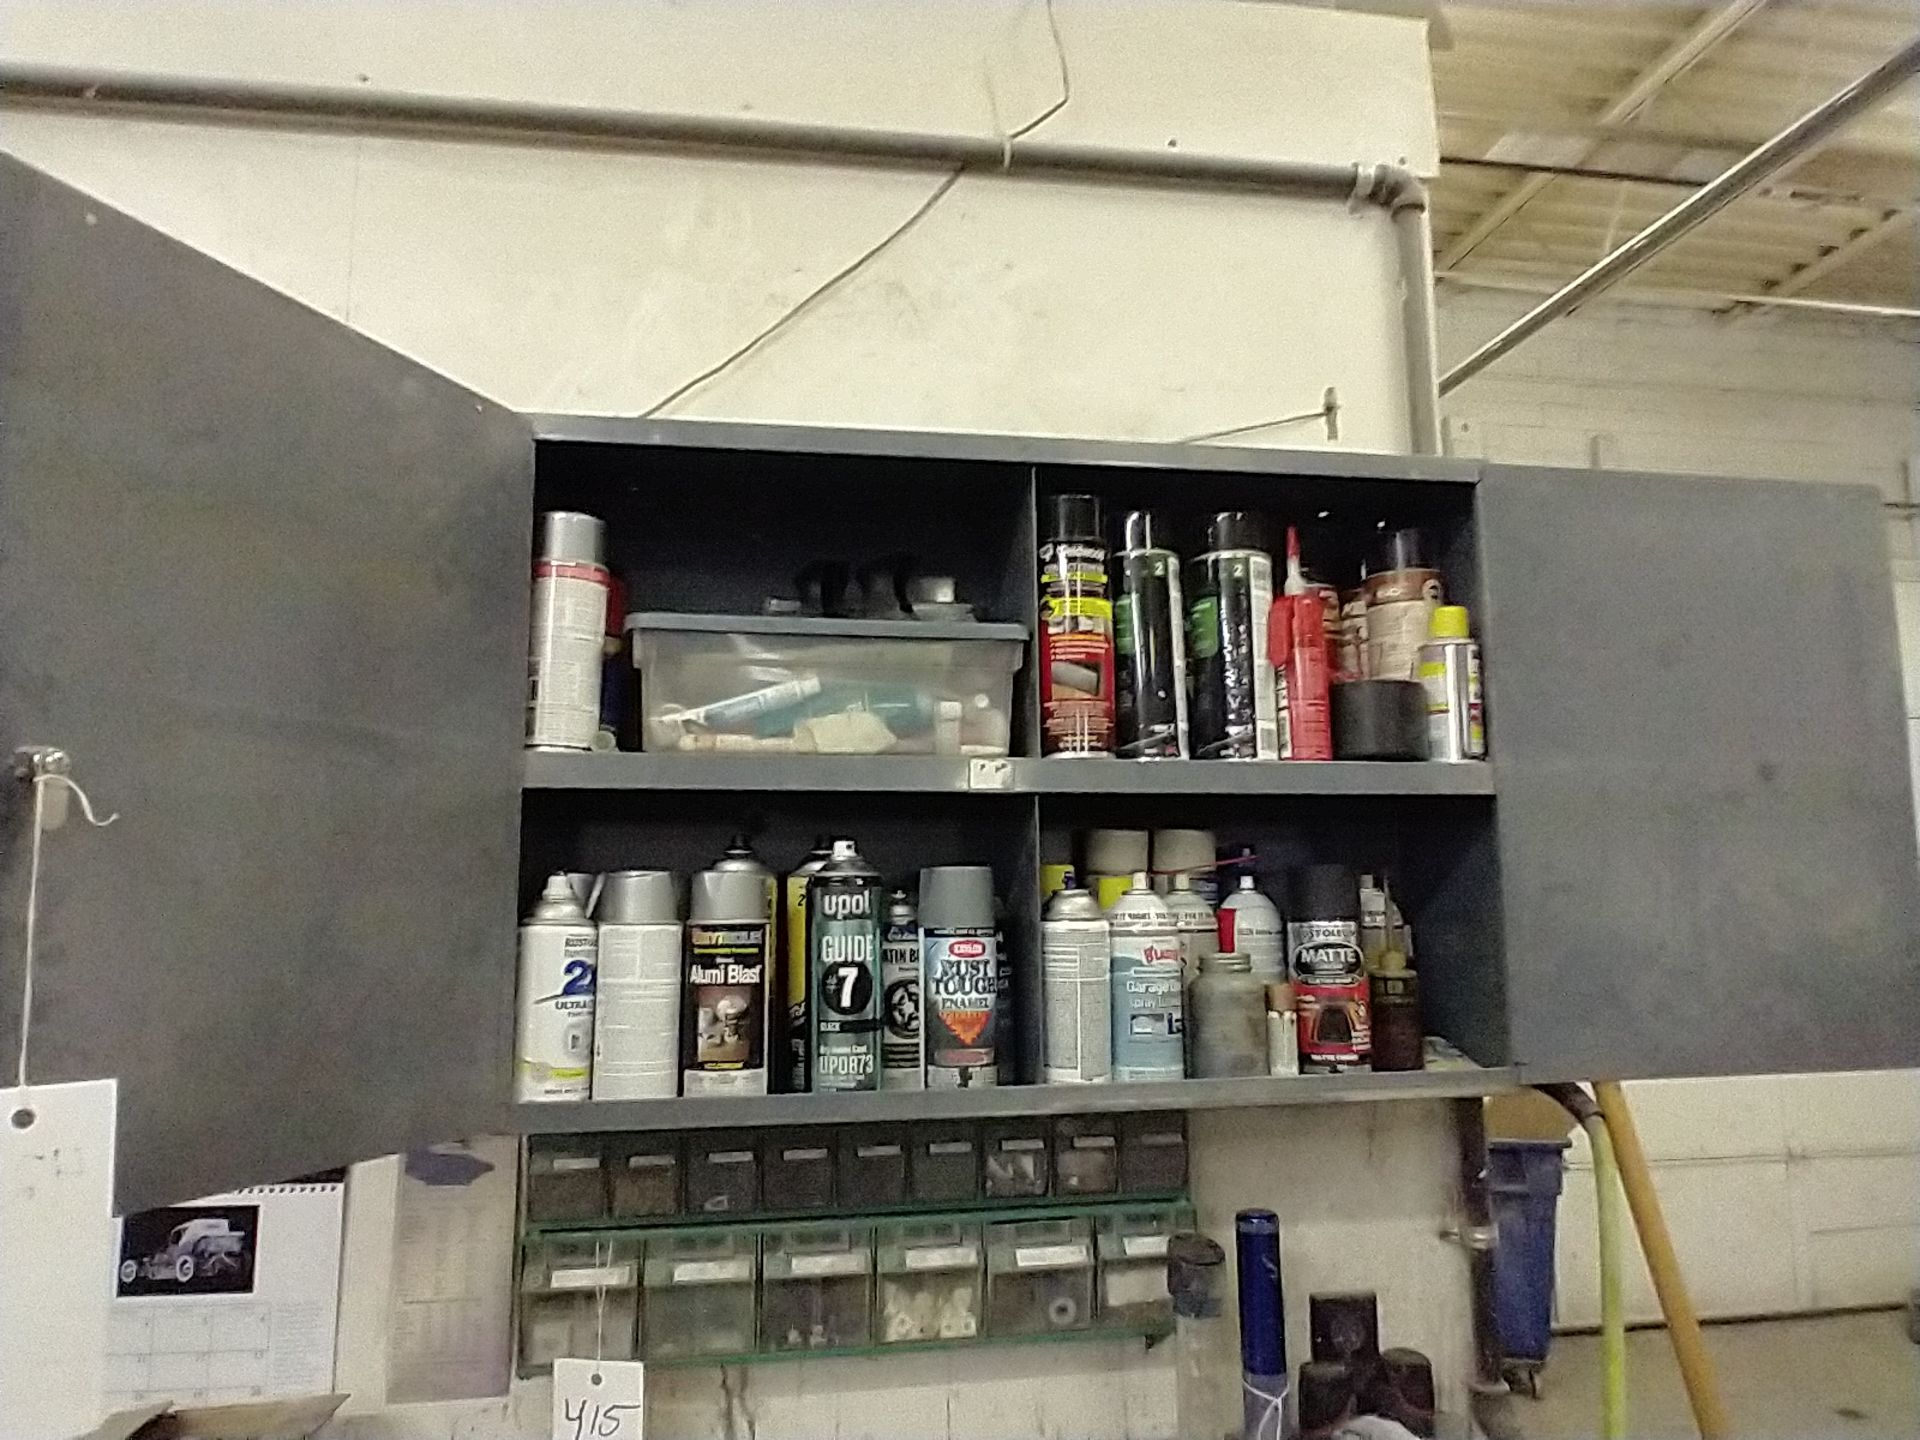 LOT OF SPRAY PAINT AND MISC IN CABINET